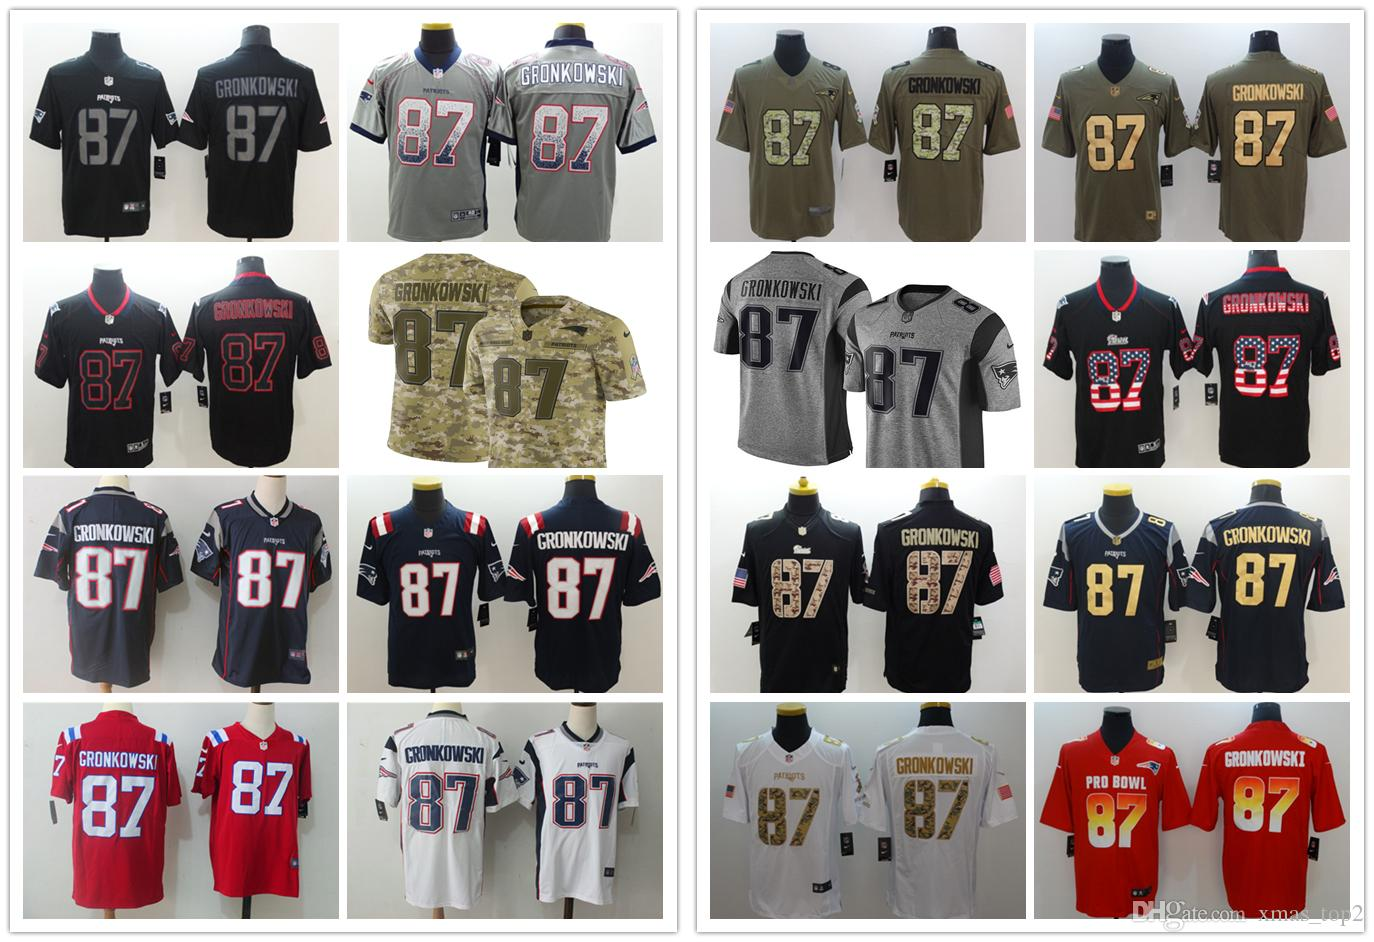 separation shoes 0a33b 8b386 2019 New Mens 87 Rob Gronkowski Camo Jersey Patriots Football Jersey  Stitched Embroidery Patriots Rob Gronkowski Color Rush Football Shirt